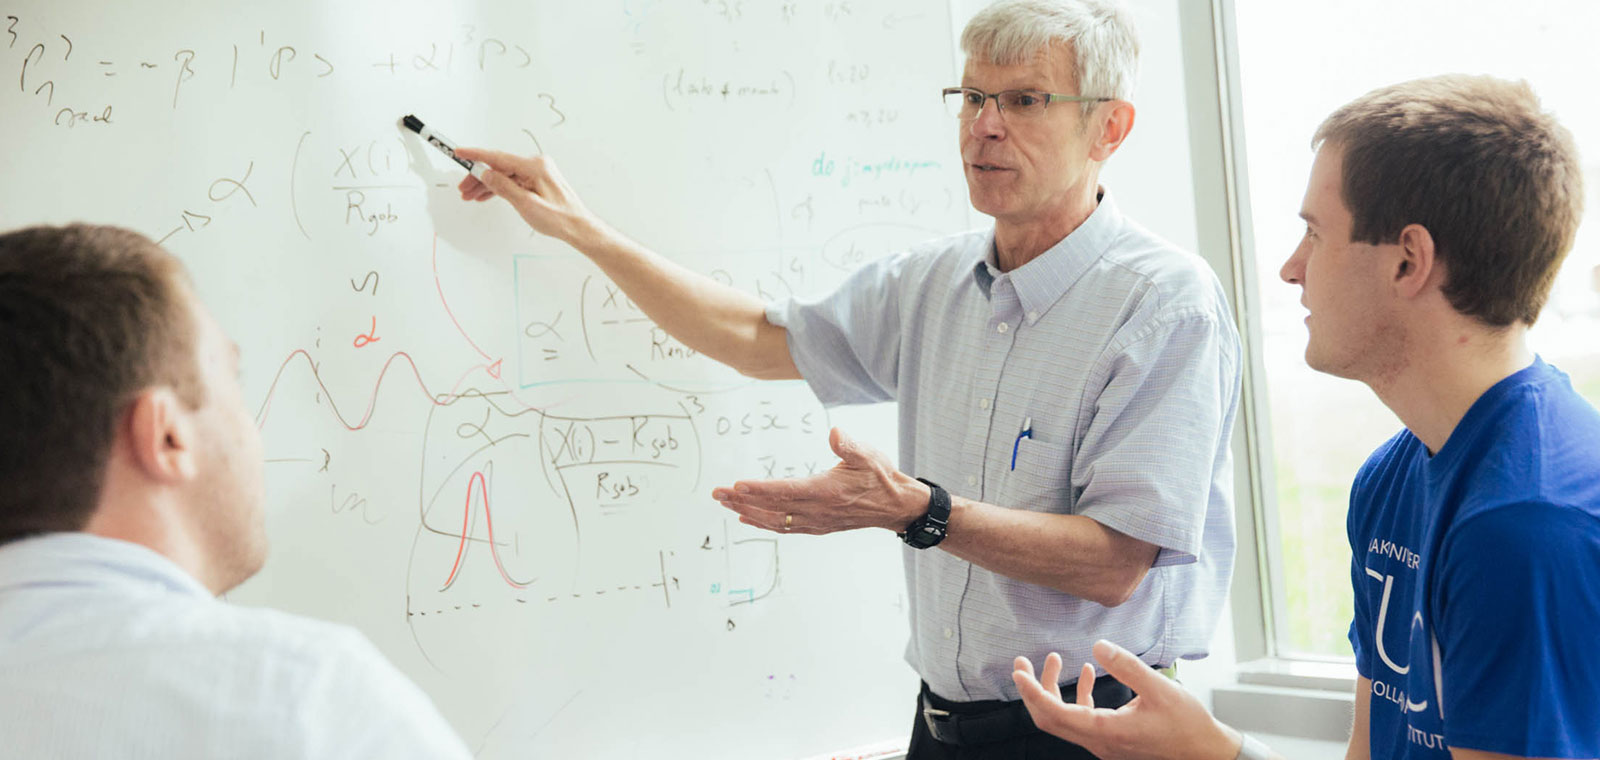 Instructor standing at a whiteboard teaching two students